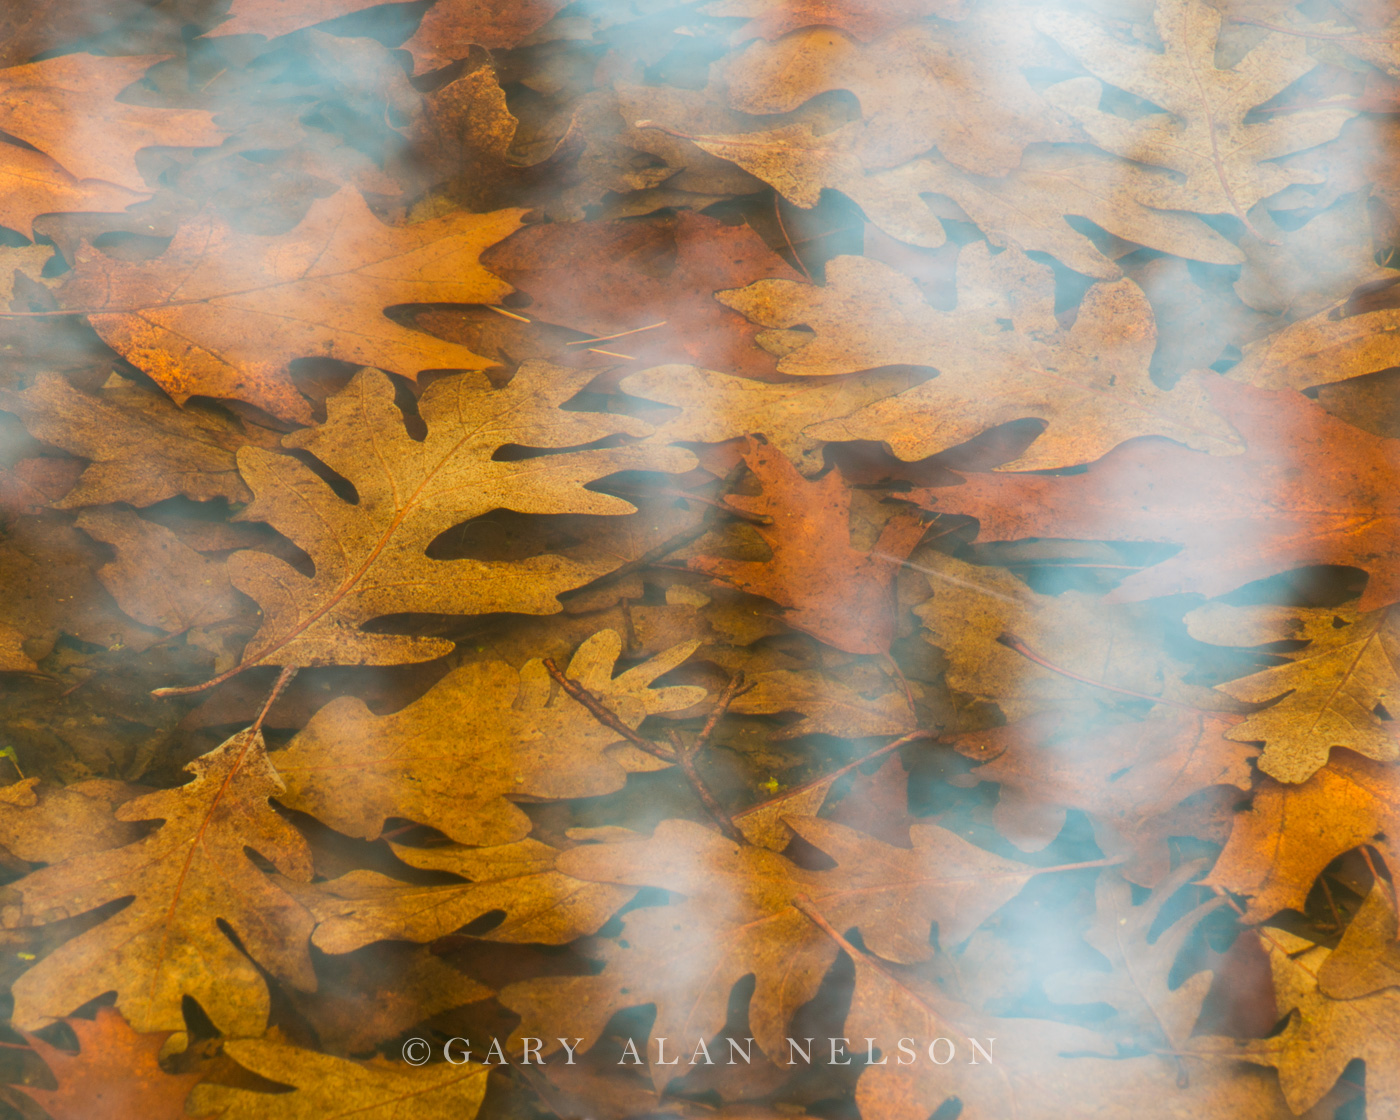 allemensratt,minnesota,oak,oak leaf,reflections,water, photo